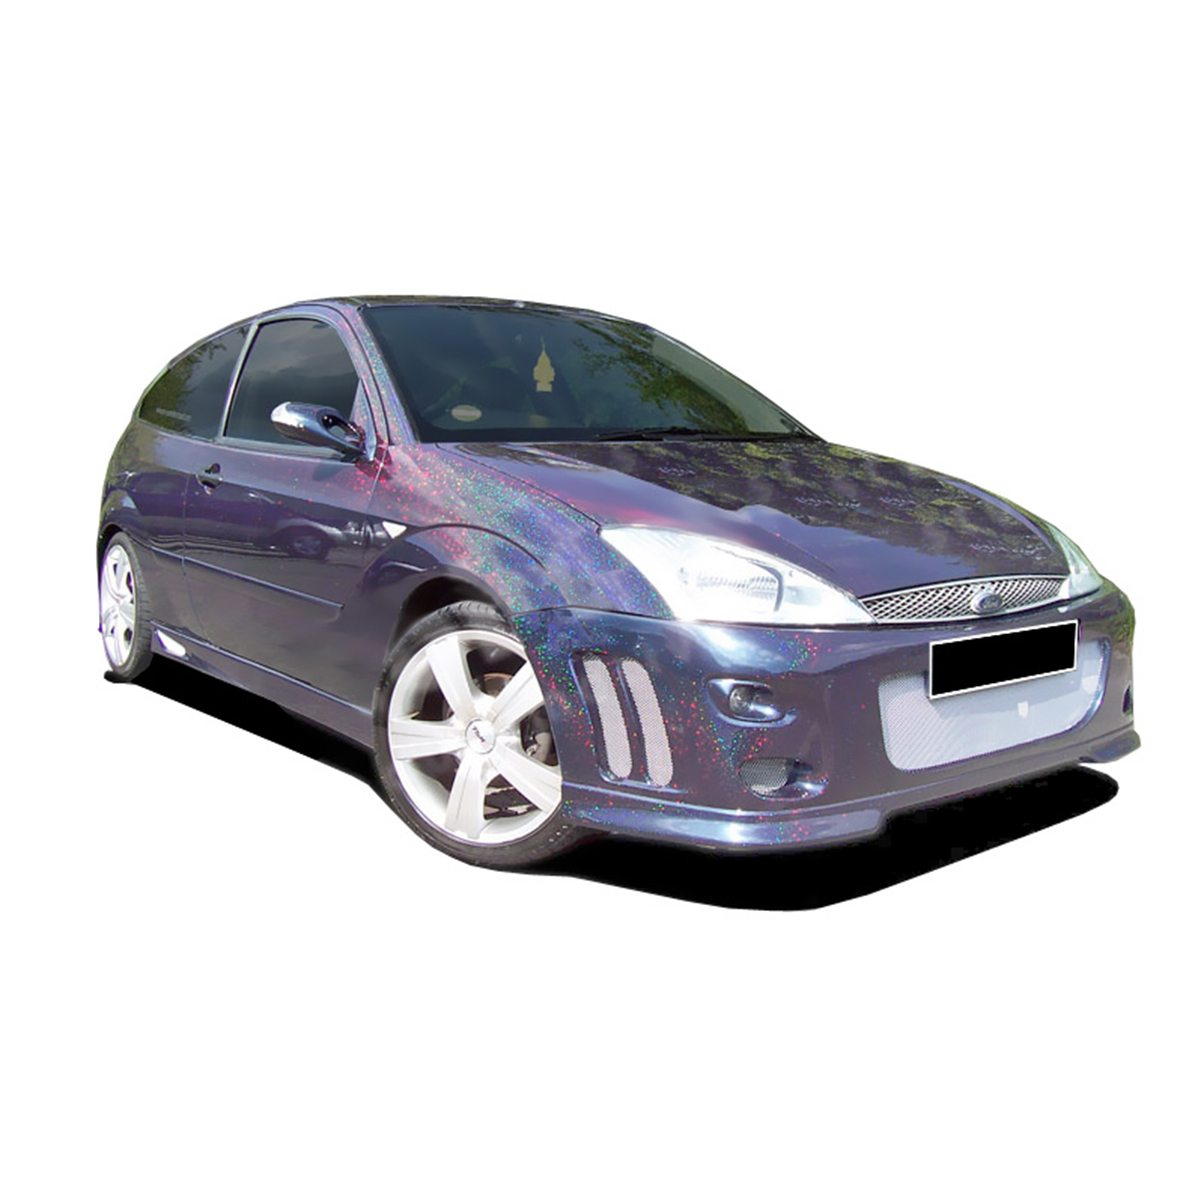 Ford-Focus-Hunter-Frt-PCA199